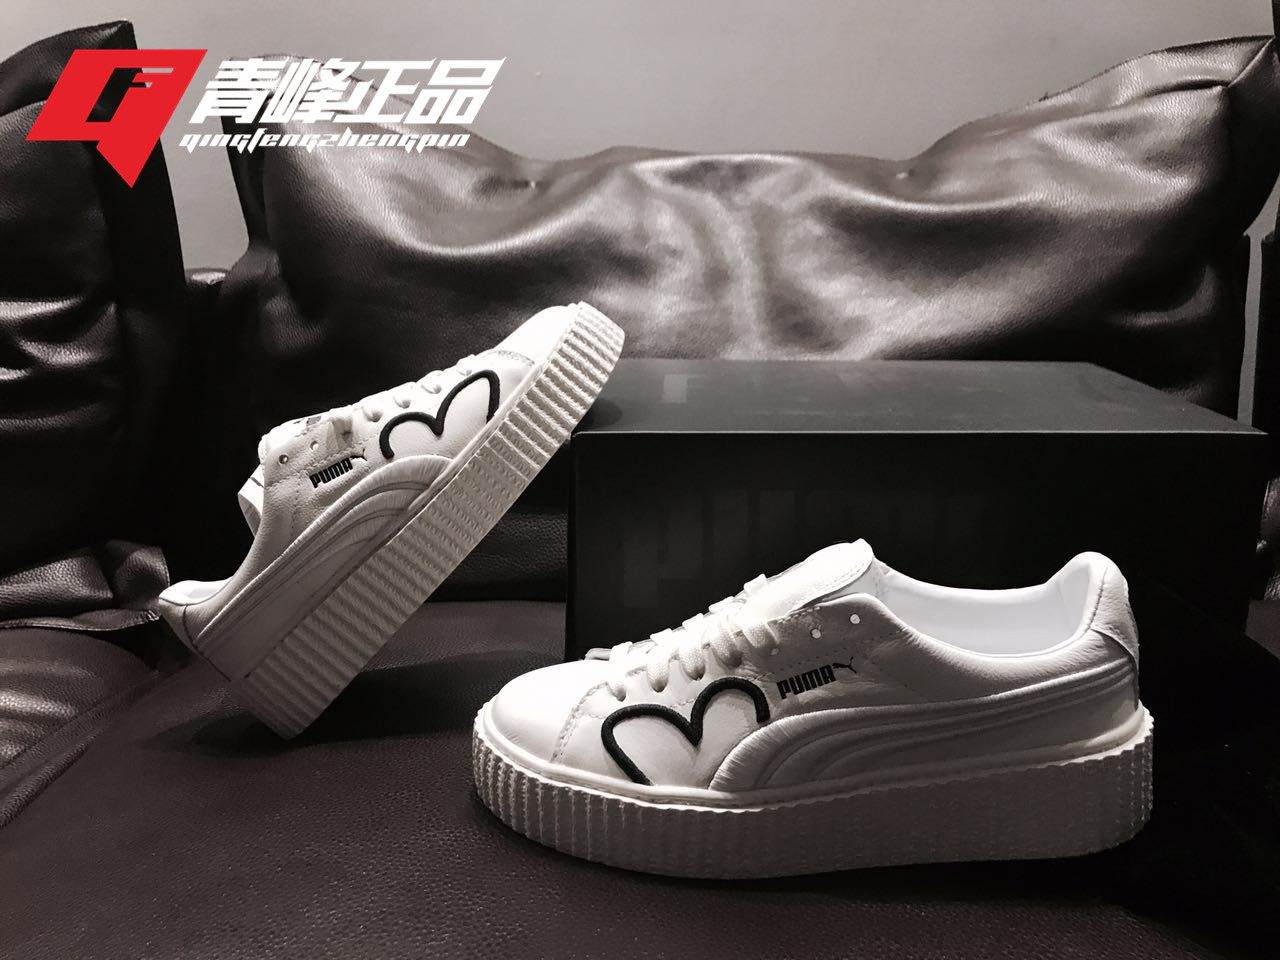 6f9512505fd ... Hummer Puma Fenty Creeper Rihanna platform shoes joint charity love  small white shoes 366403